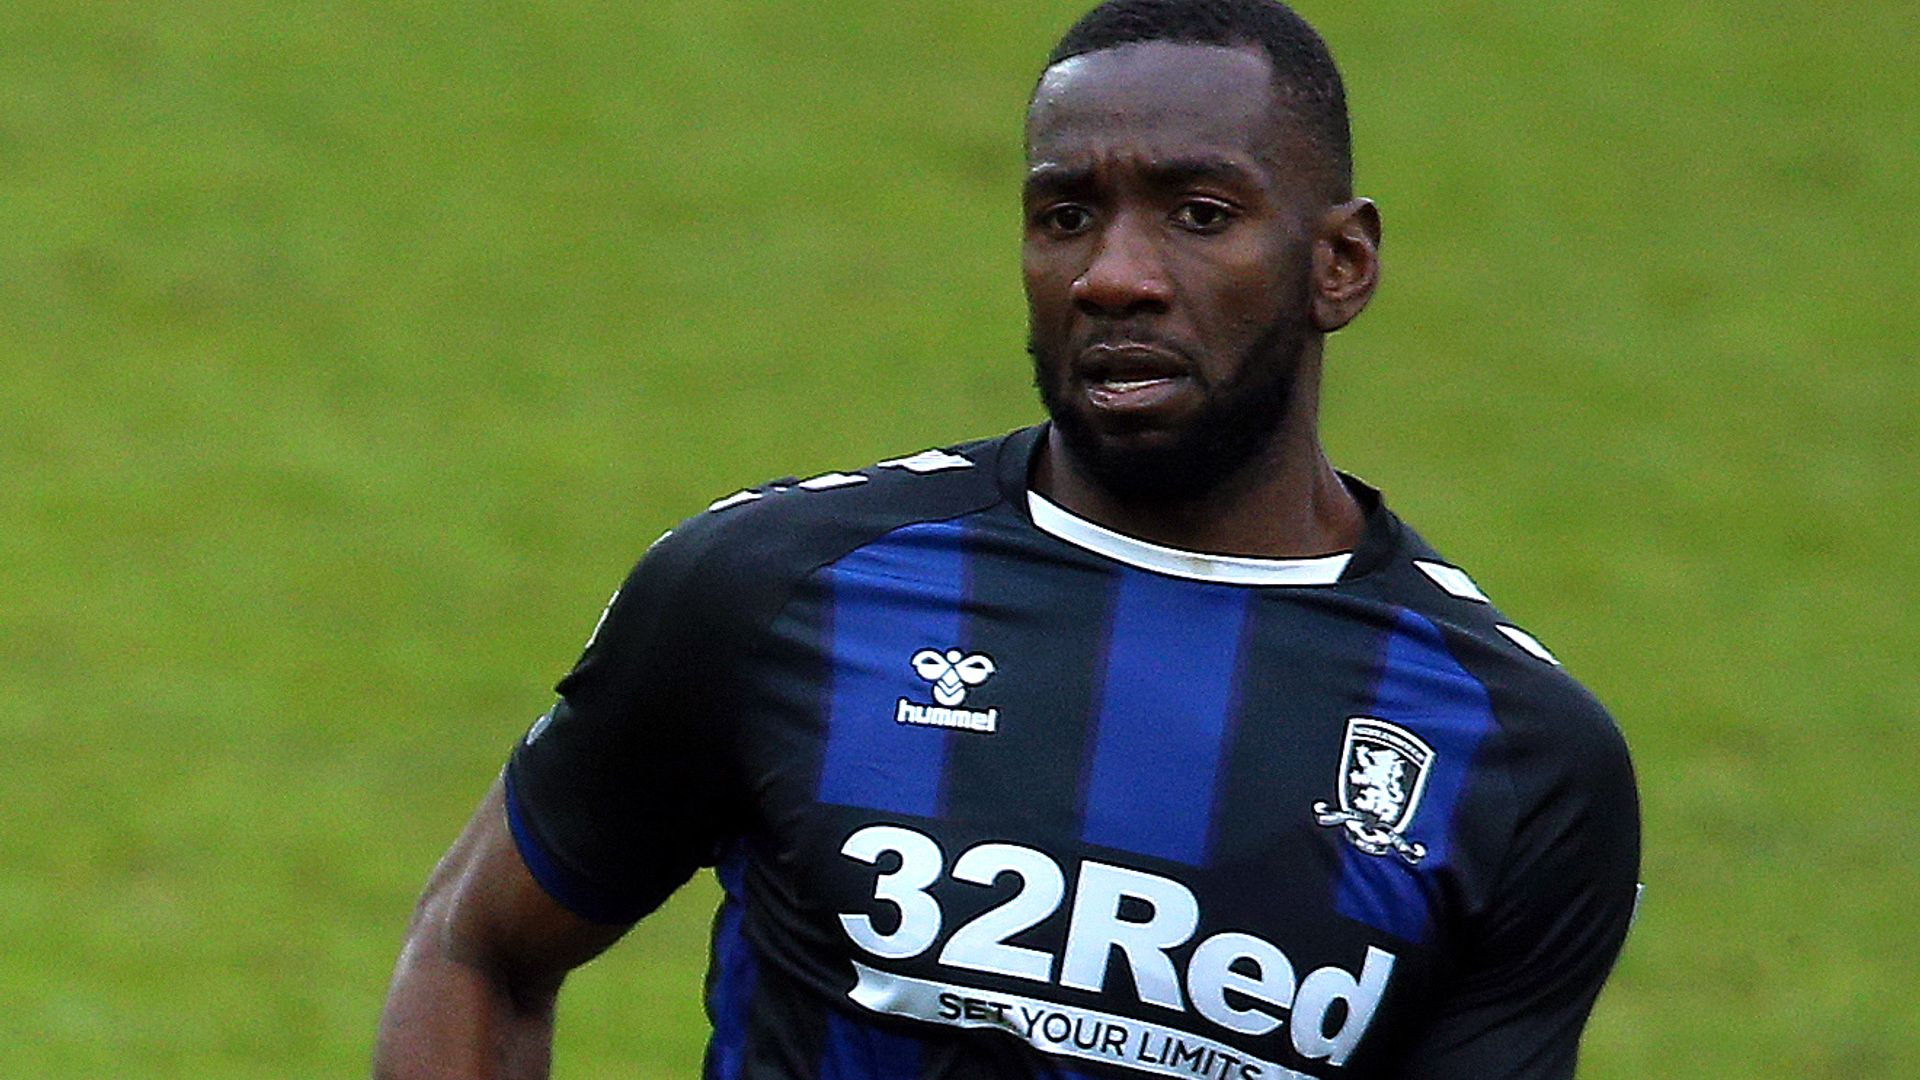 Bolasie receives racist abuse on social media